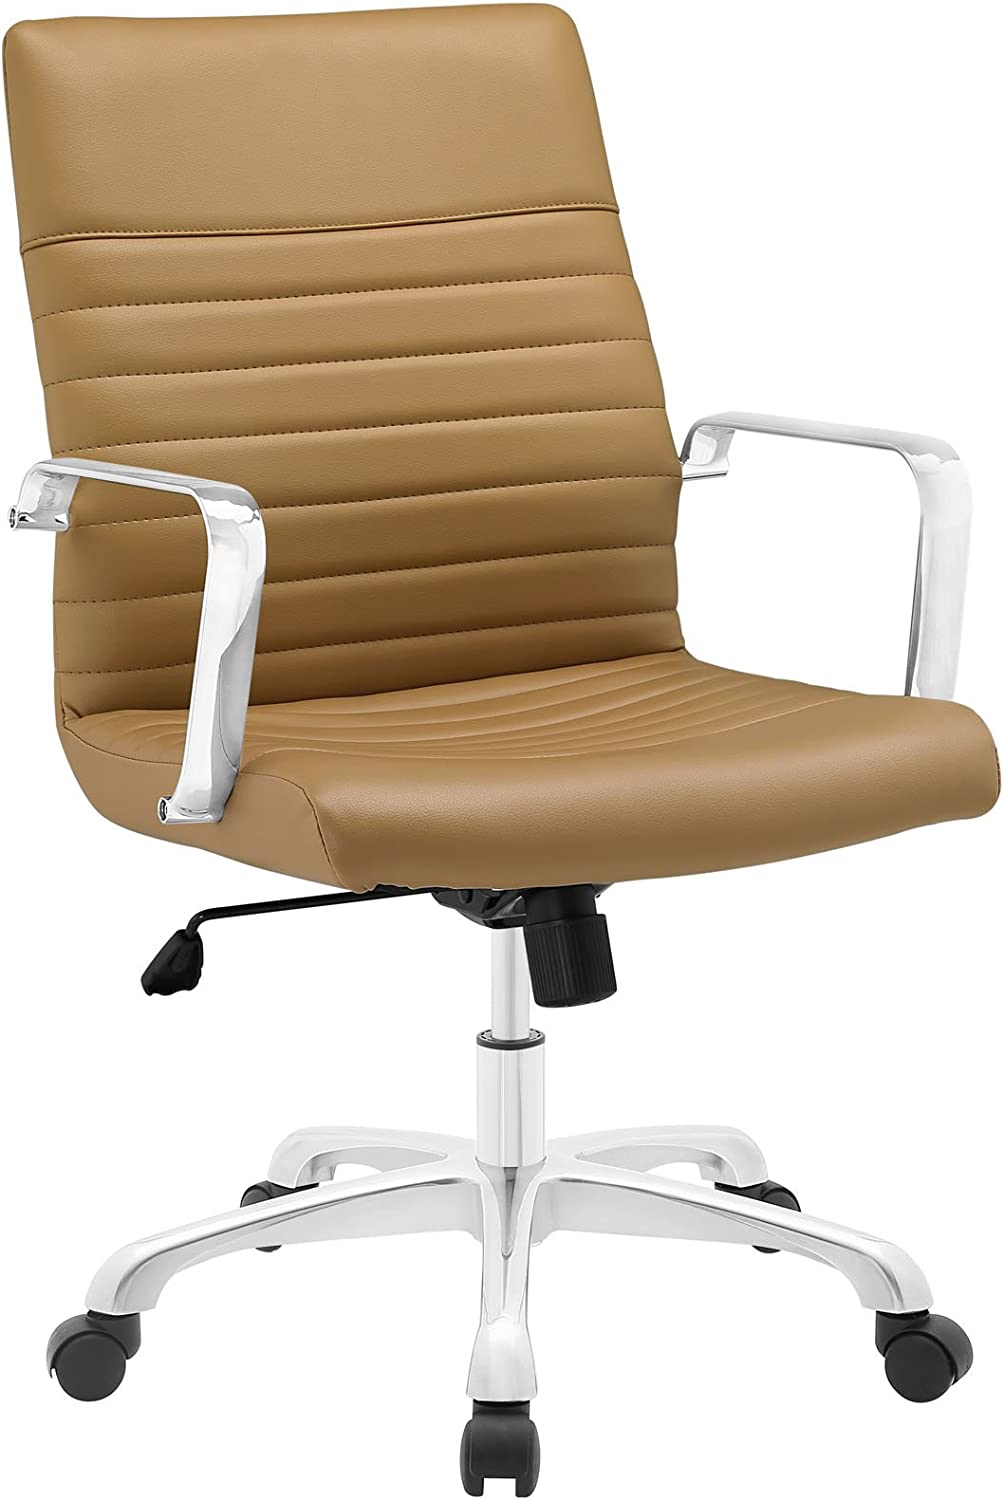 Modway Finesse Ribbed Faux Leather Mid Back Ergonomic Swivel Computer Desk, Tan